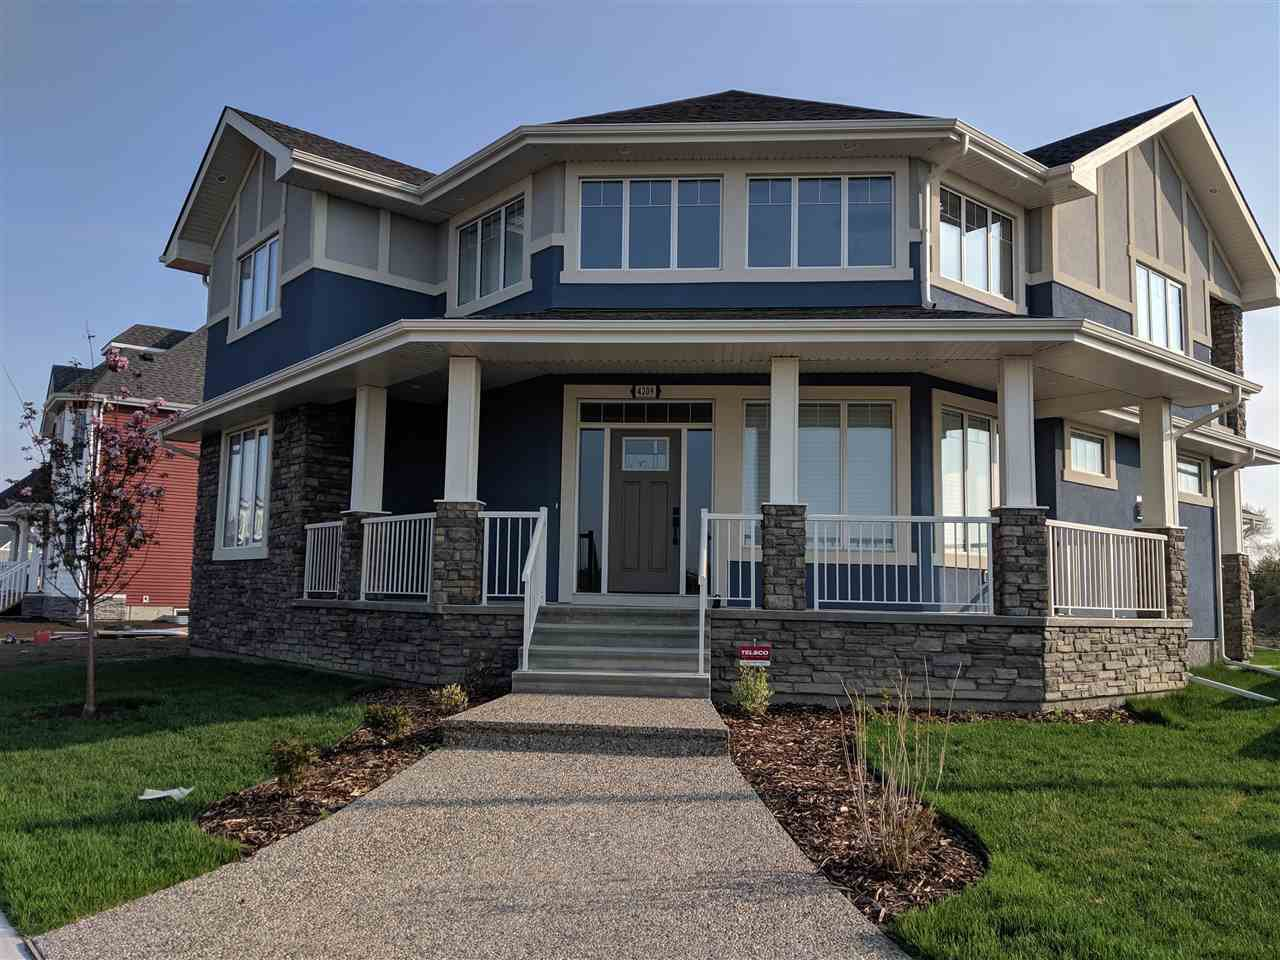 Main Photo: 4209 Veterans Way in Edmonton: Zone 27 House for sale : MLS®# E4159055